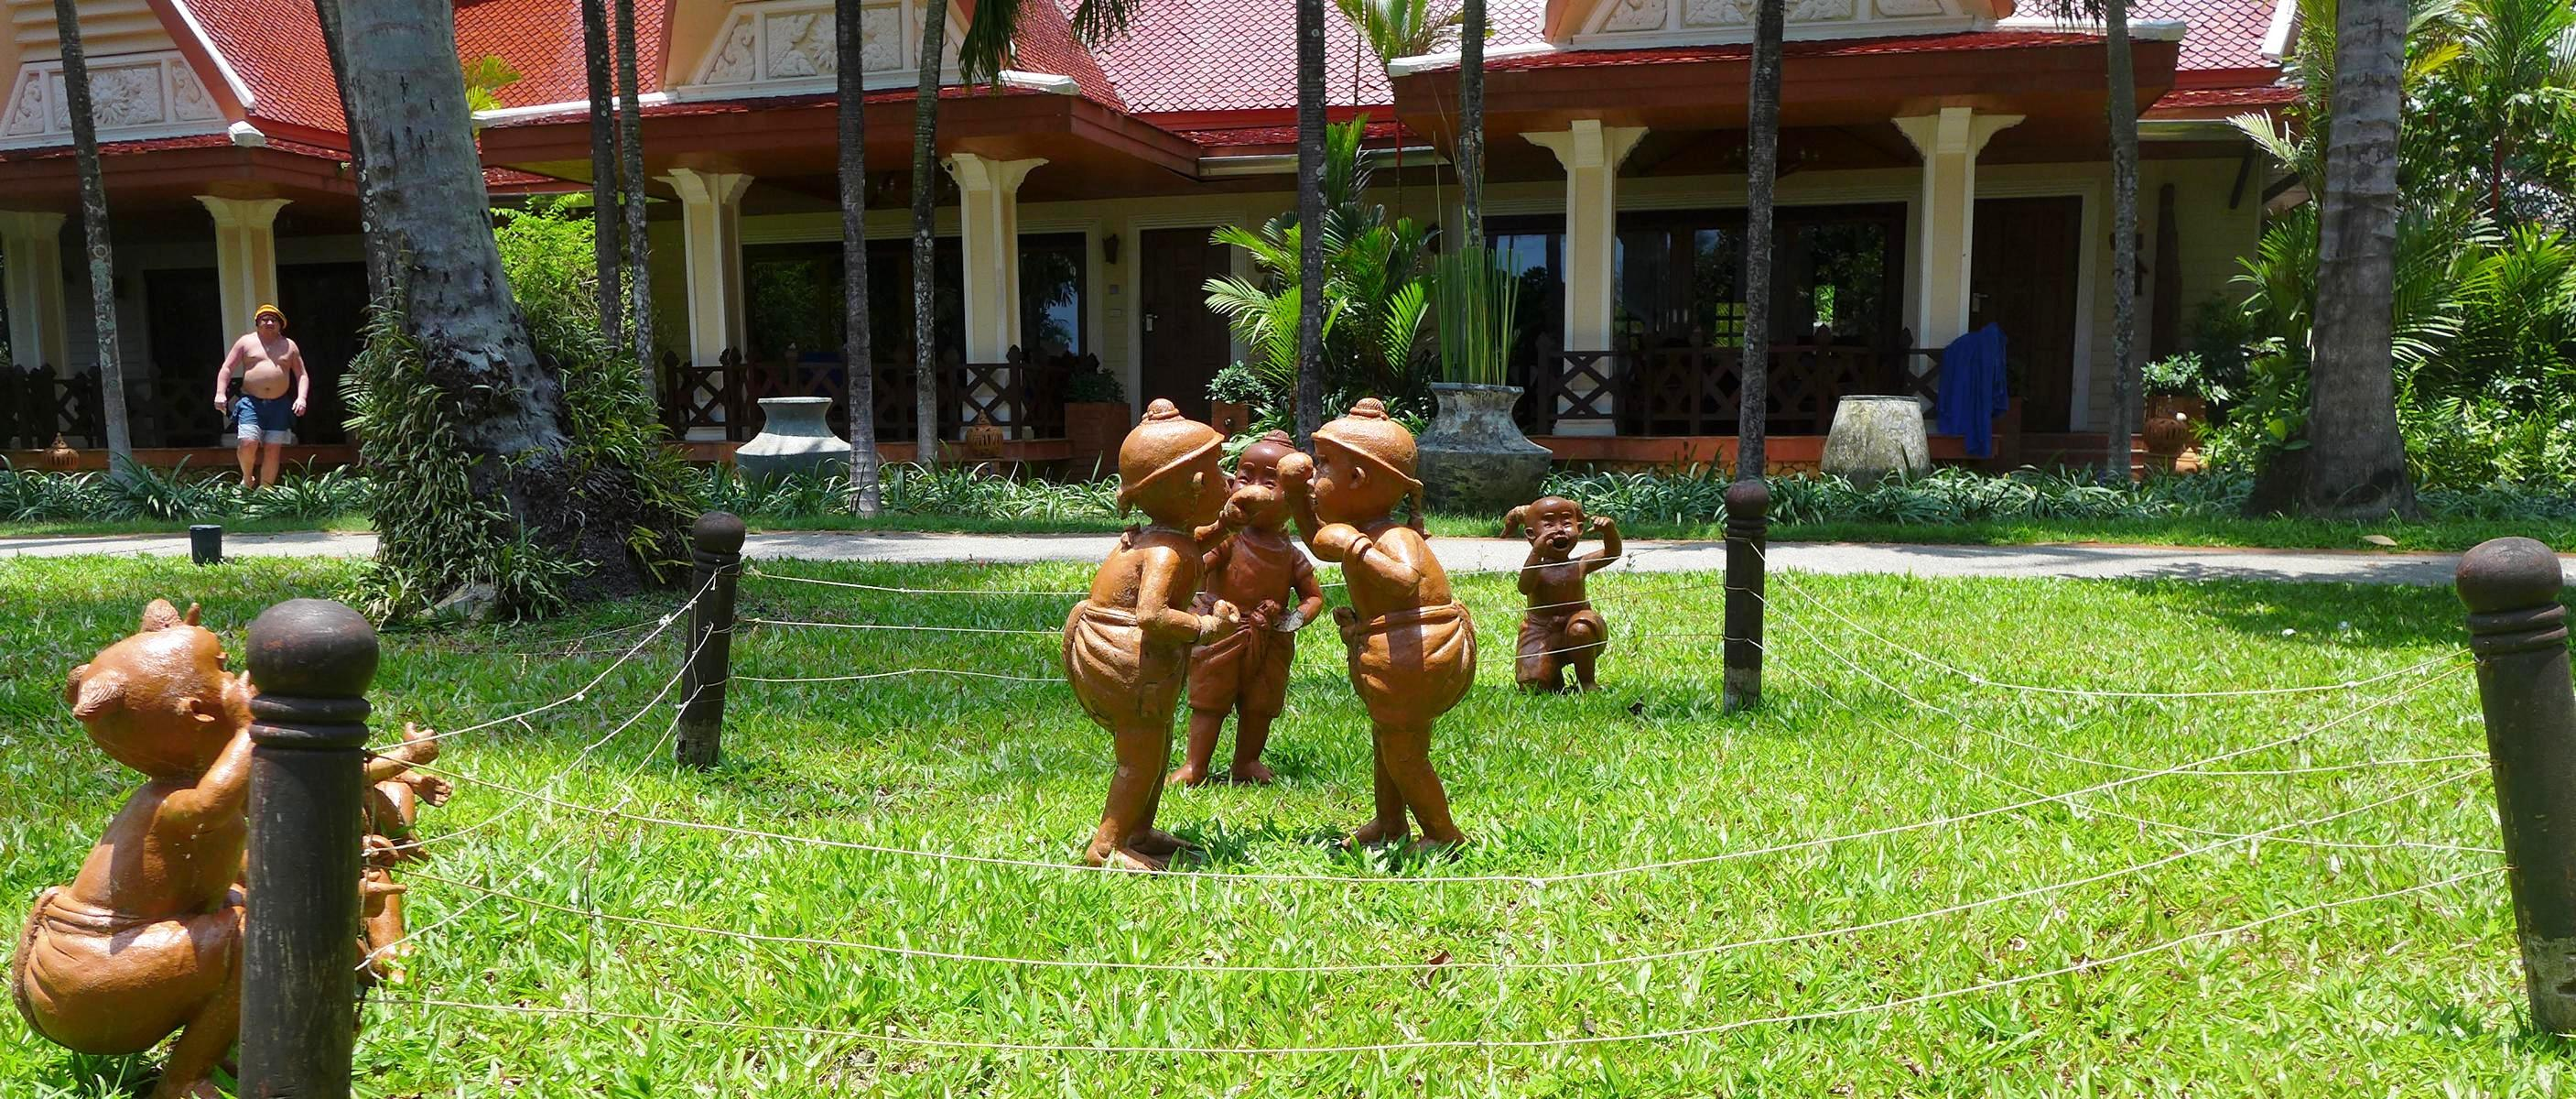 150619_2_Hotels_Koh_Chang